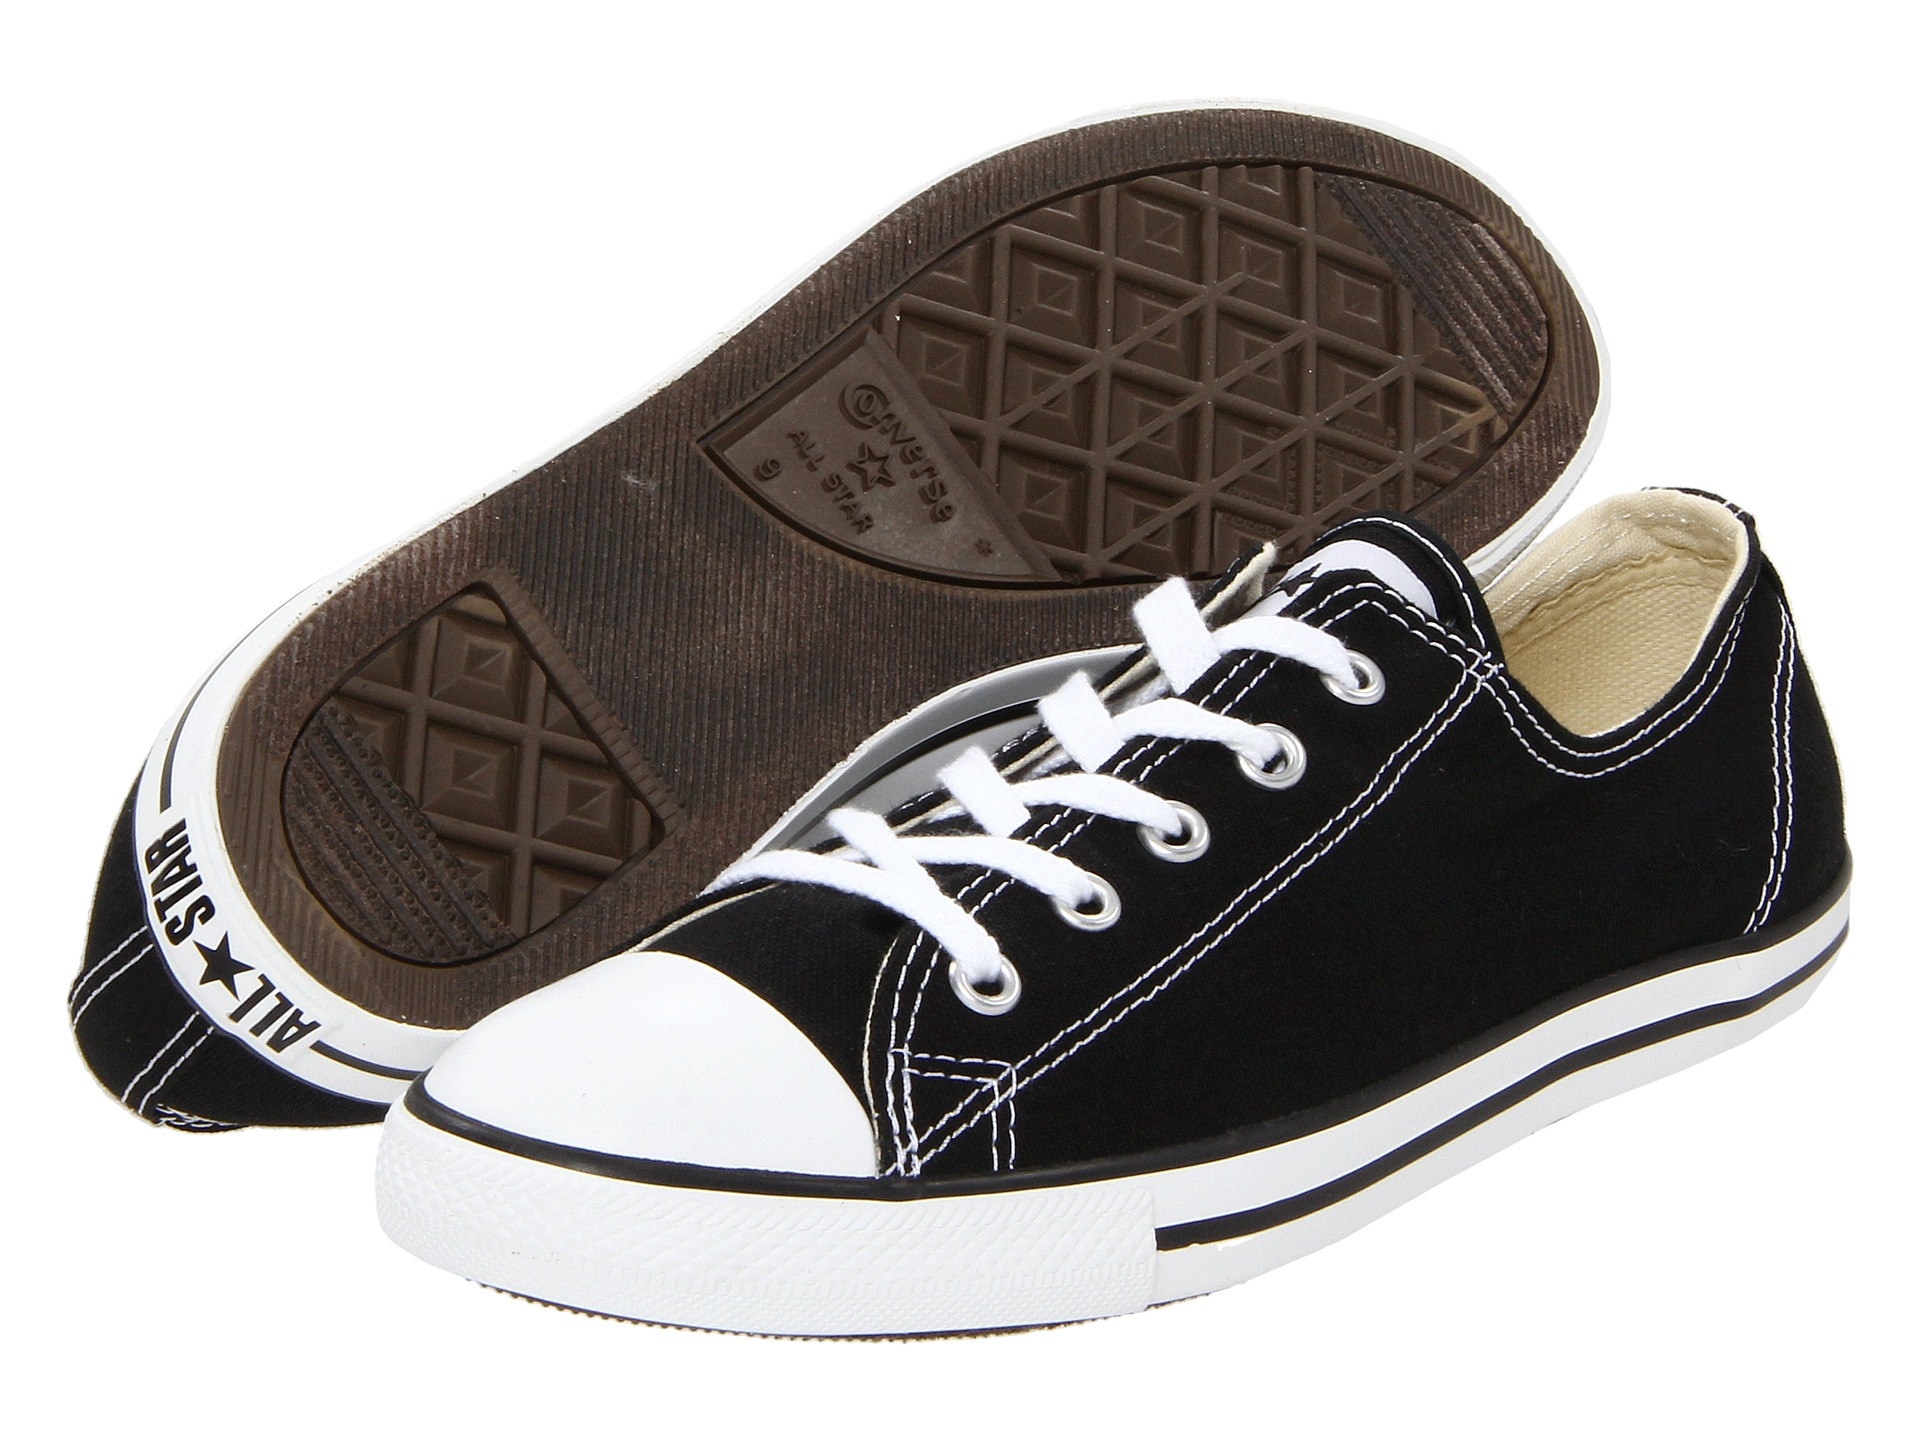 converse chuck taylor all star dainty ox free shipping both ways. Black Bedroom Furniture Sets. Home Design Ideas